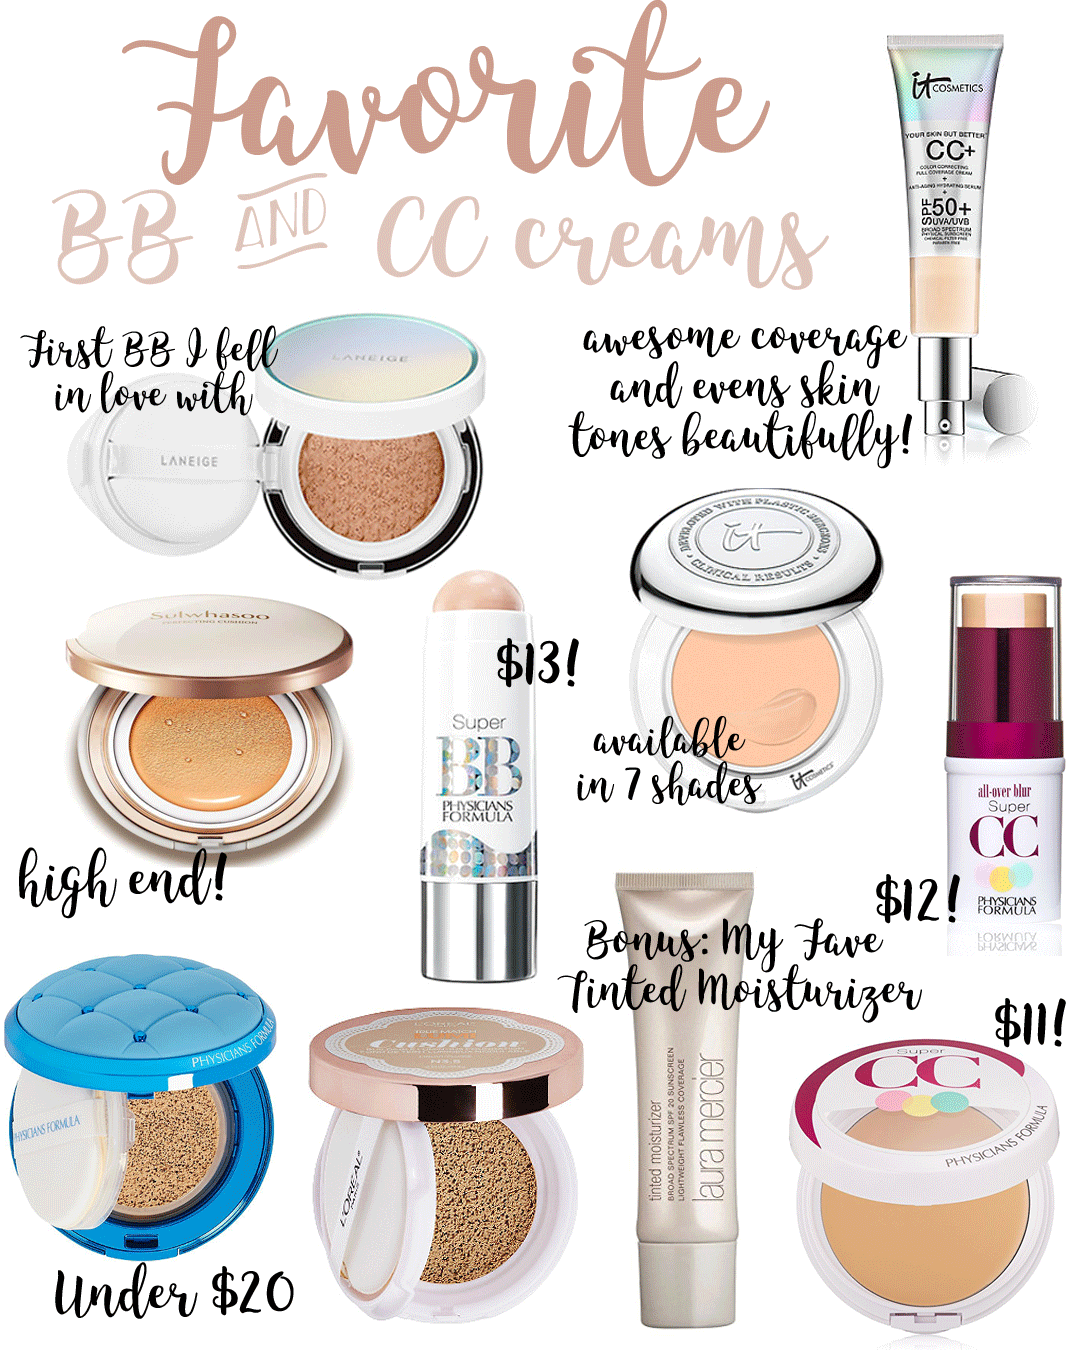 Favorite BB & CC Creams angela lanter hello gorgeous